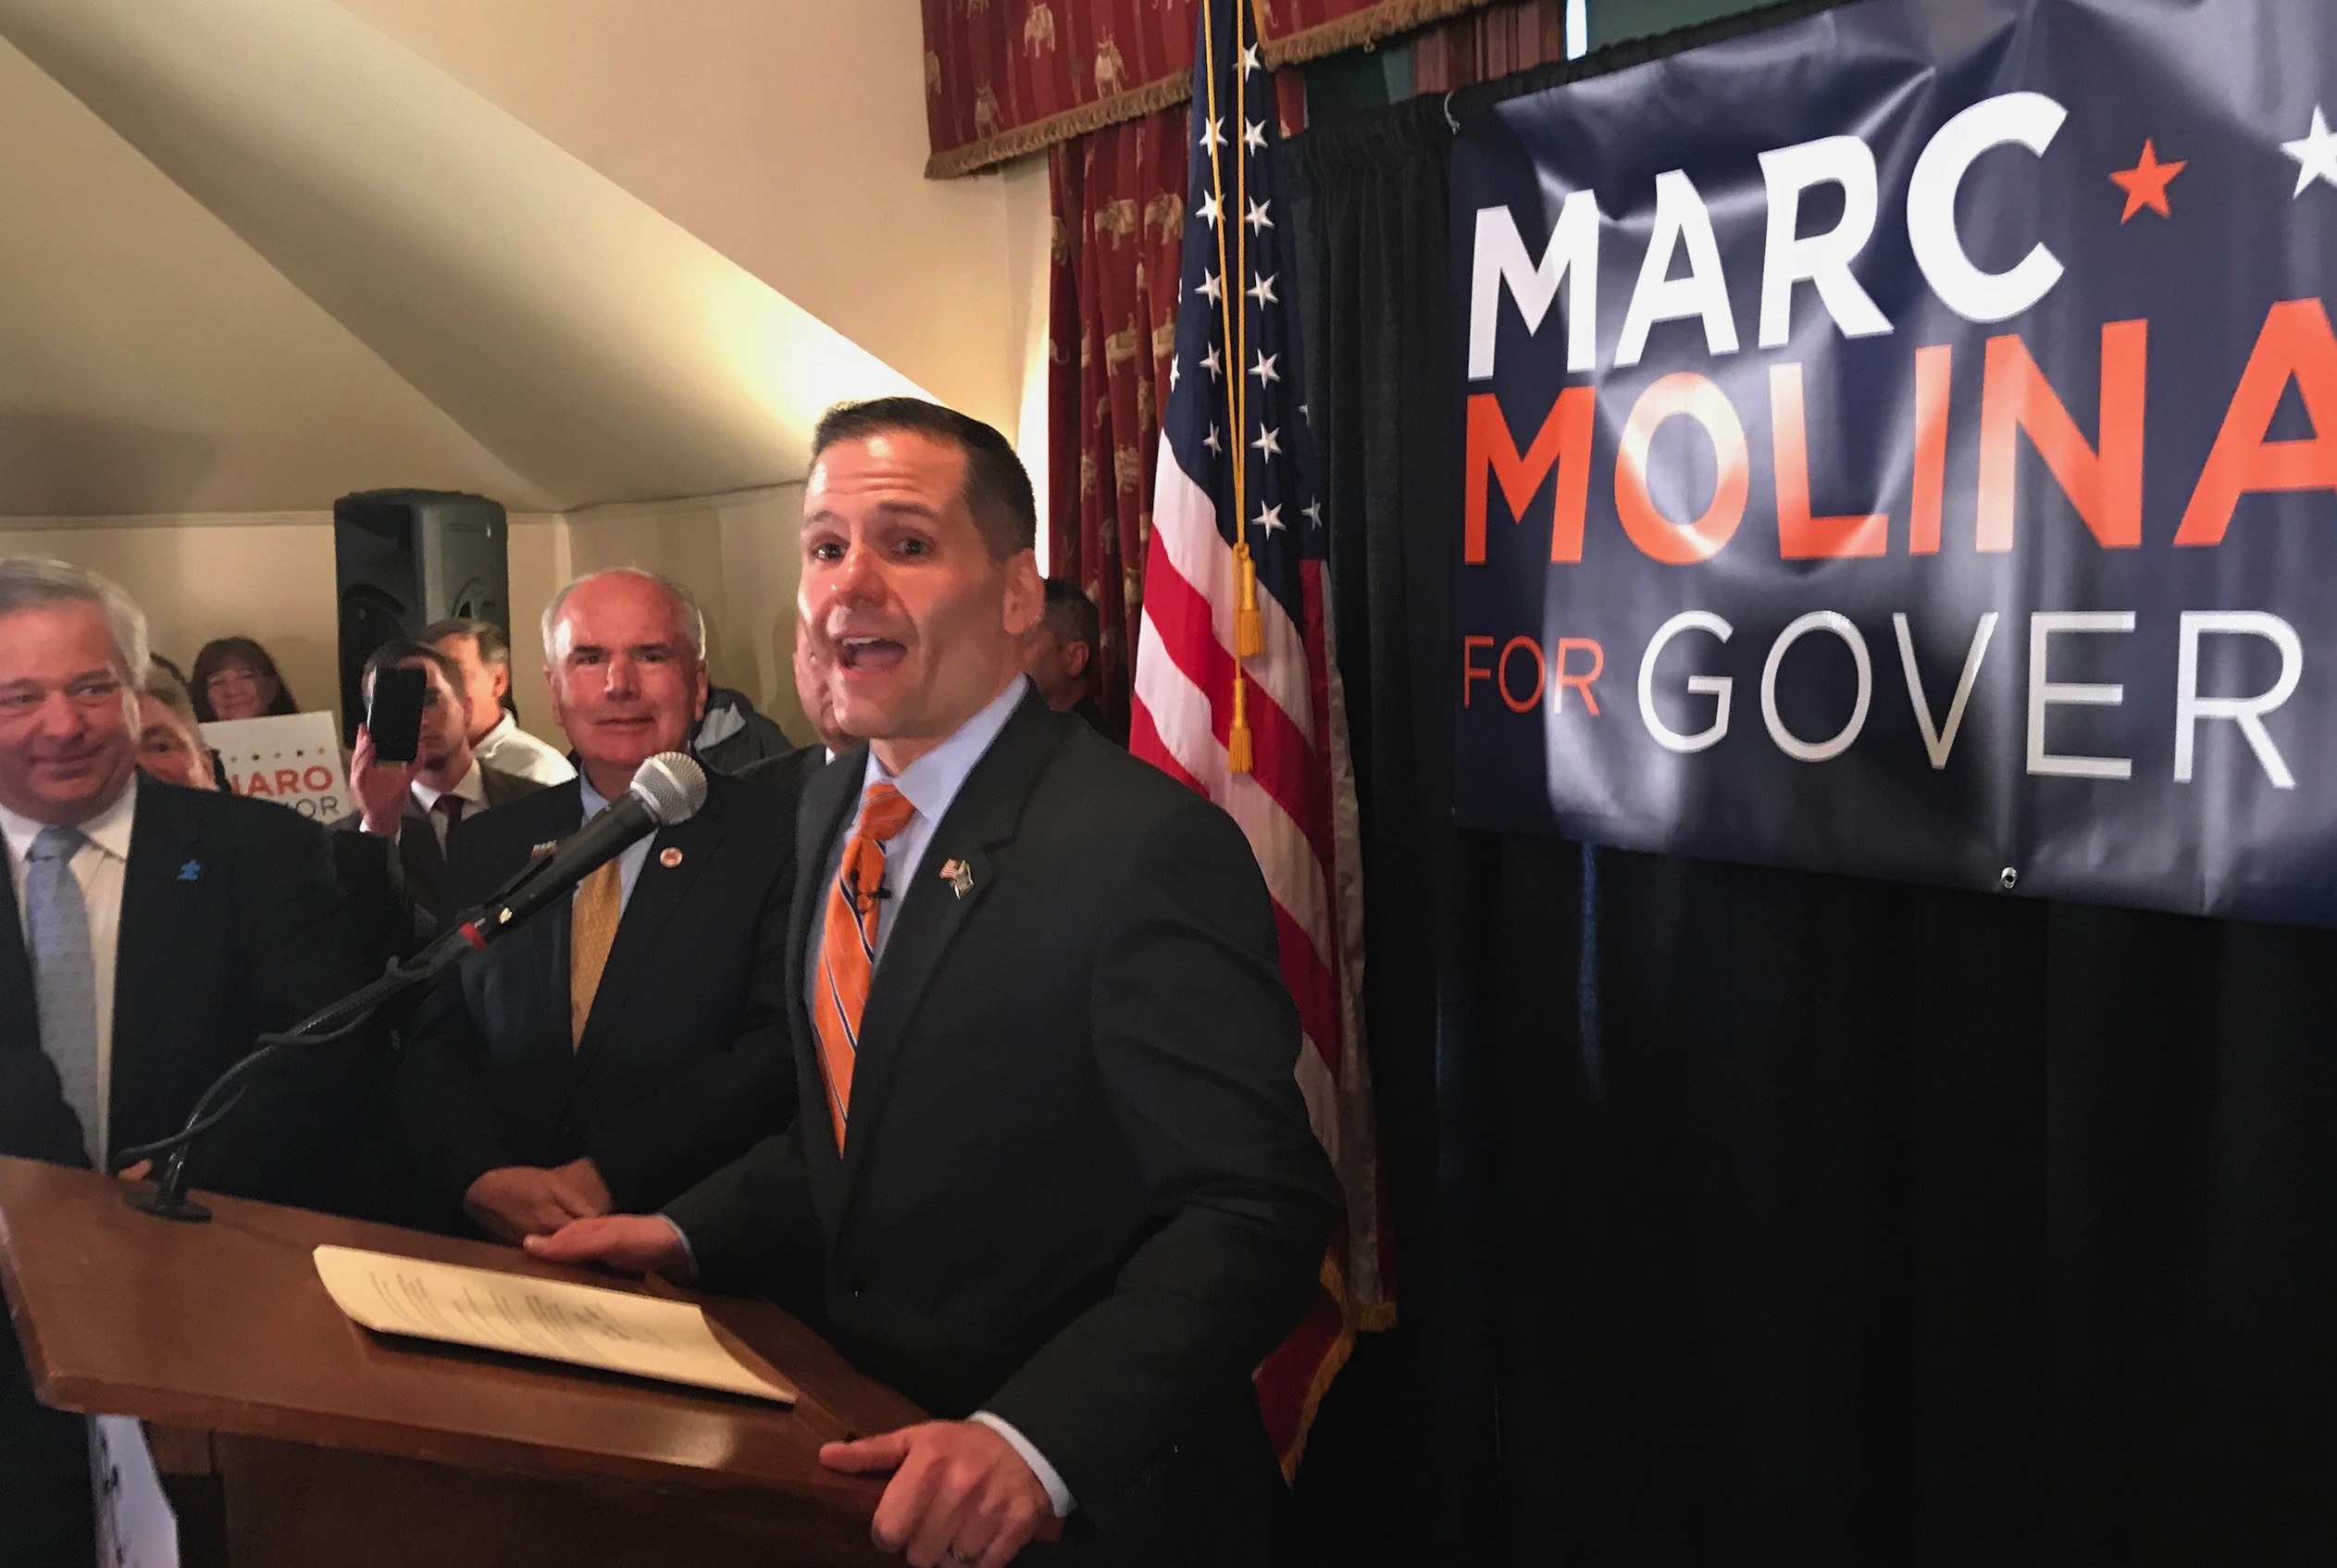 marc molinaro launch